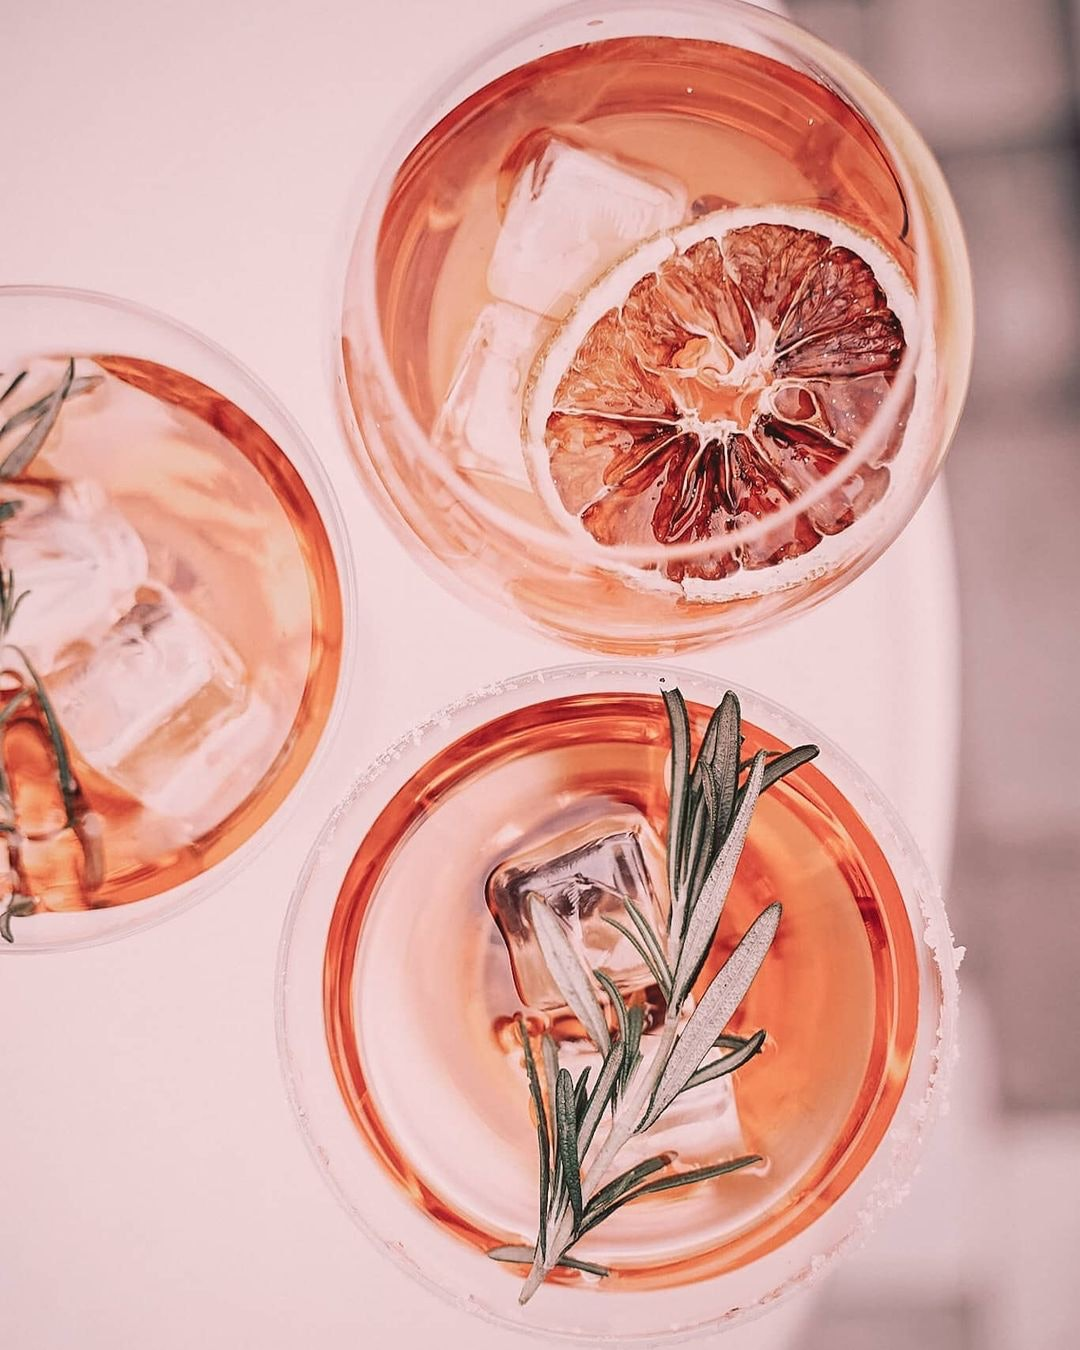 Cocktails with rosemary and candied orange